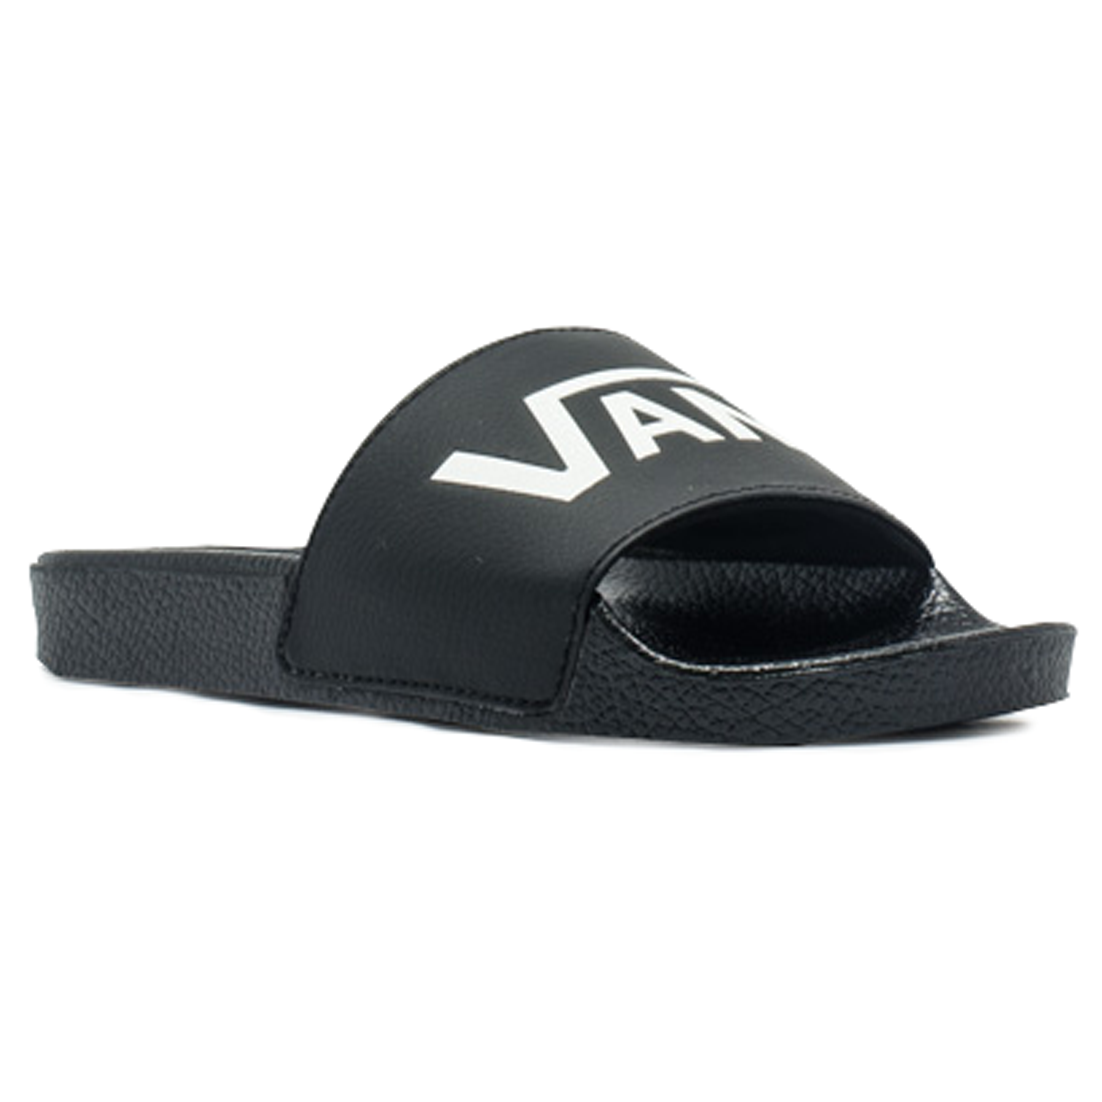 Chinelo Vans Slide-On Preto